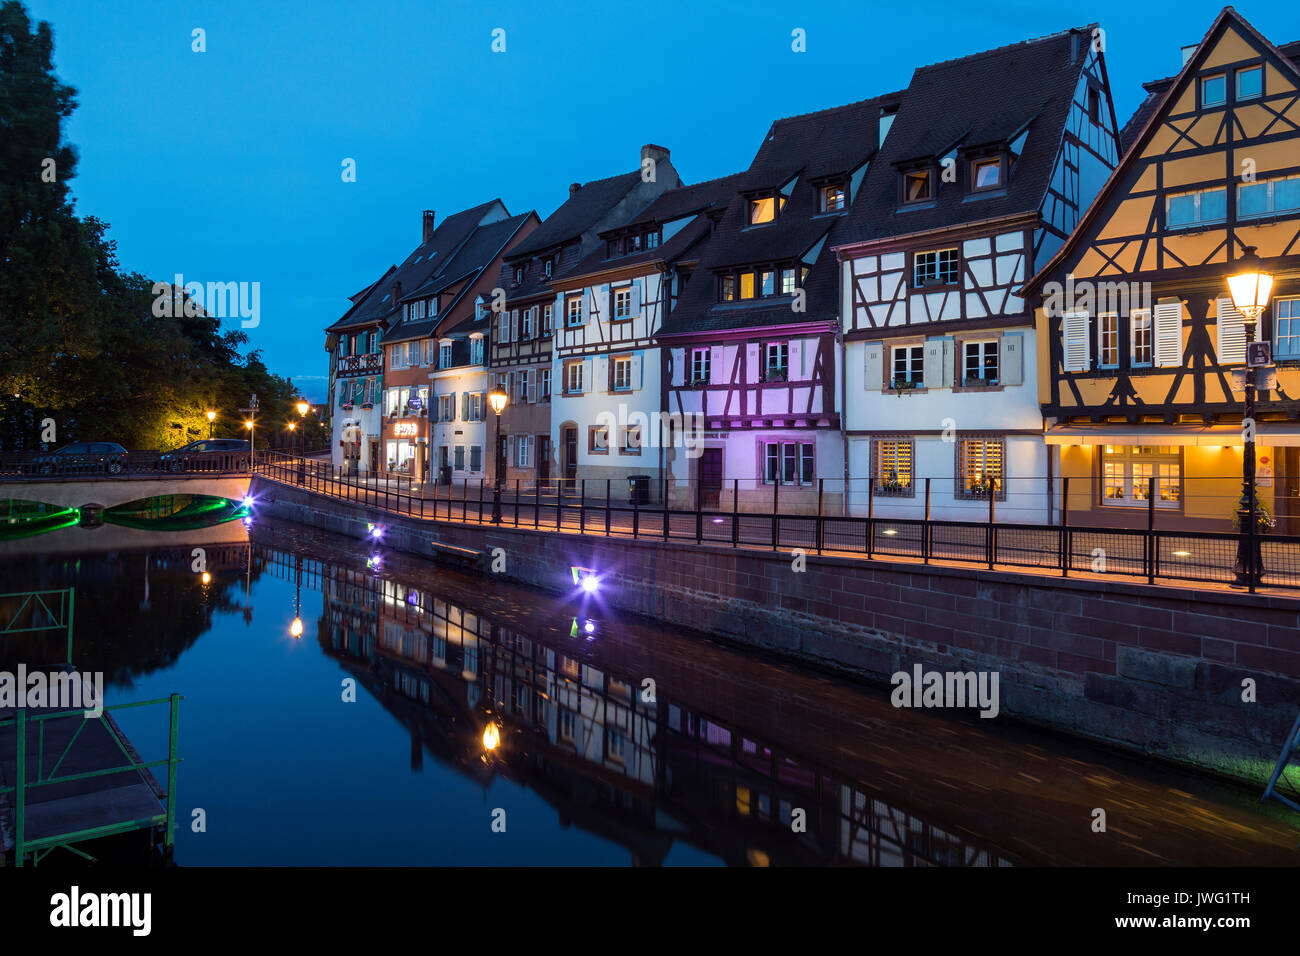 Historic buildings in the Little Venice area of the old town of Colmar in the Alsace region of northeast France. - Stock Image